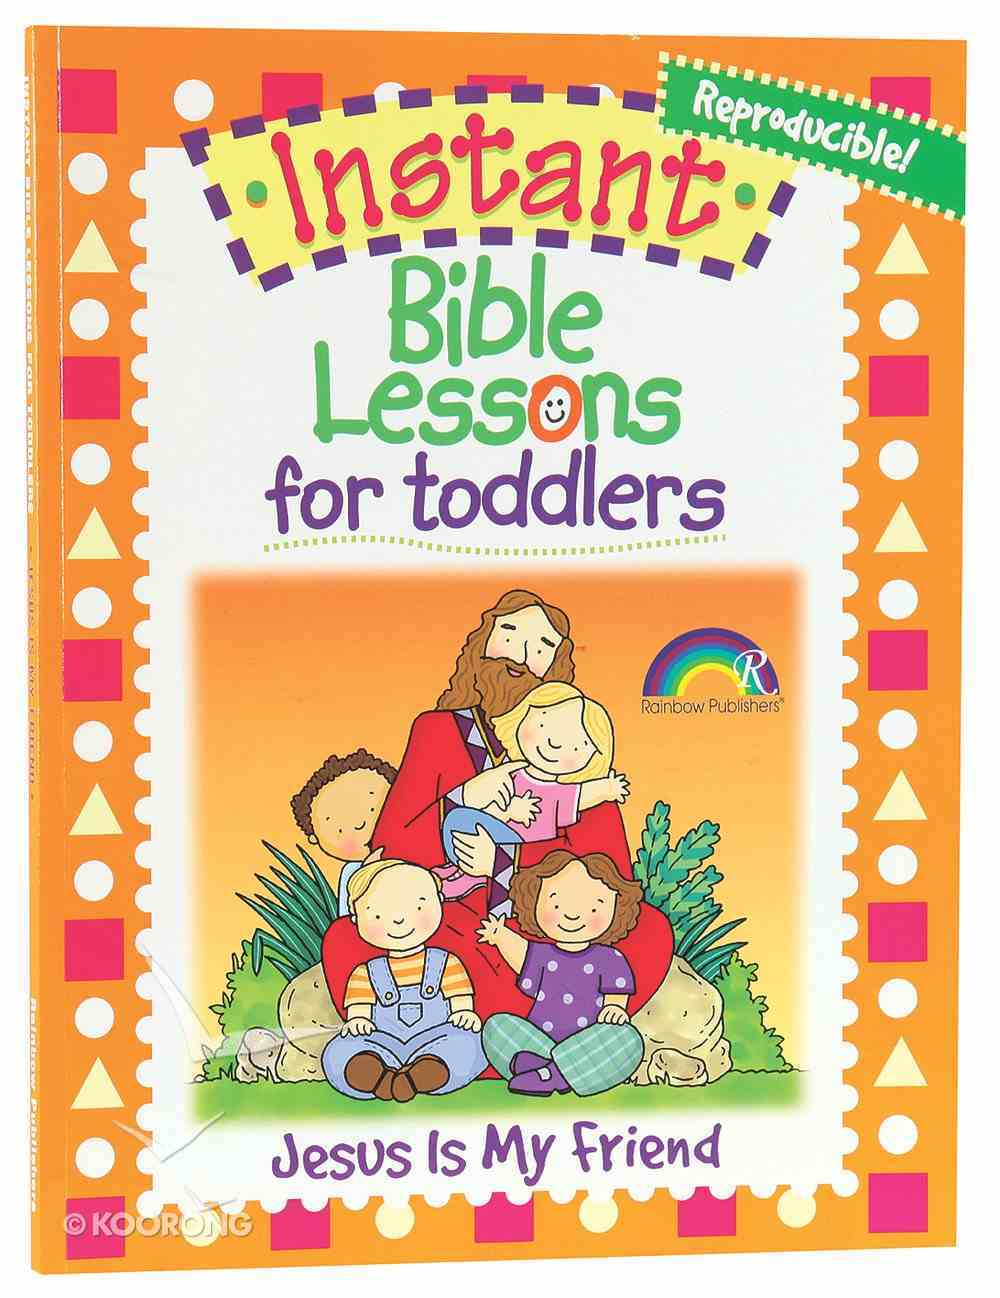 Jesus is My Friend (Reproducible, Ages 1-3) (Instant Bible Lessons Series) Paperback